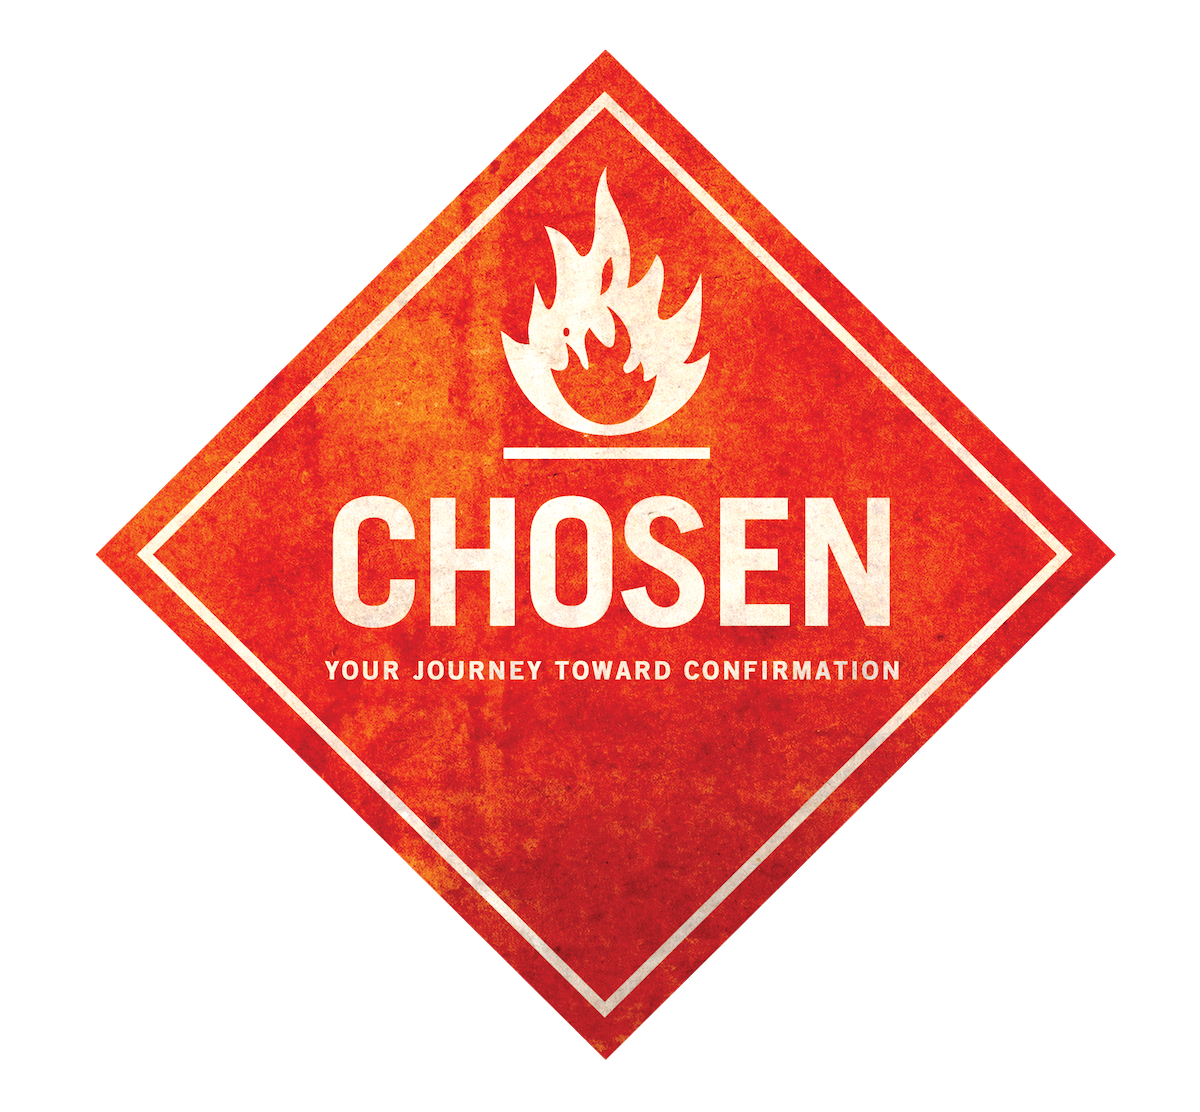 Chosen: A Confirmation Program Worth Checking Out